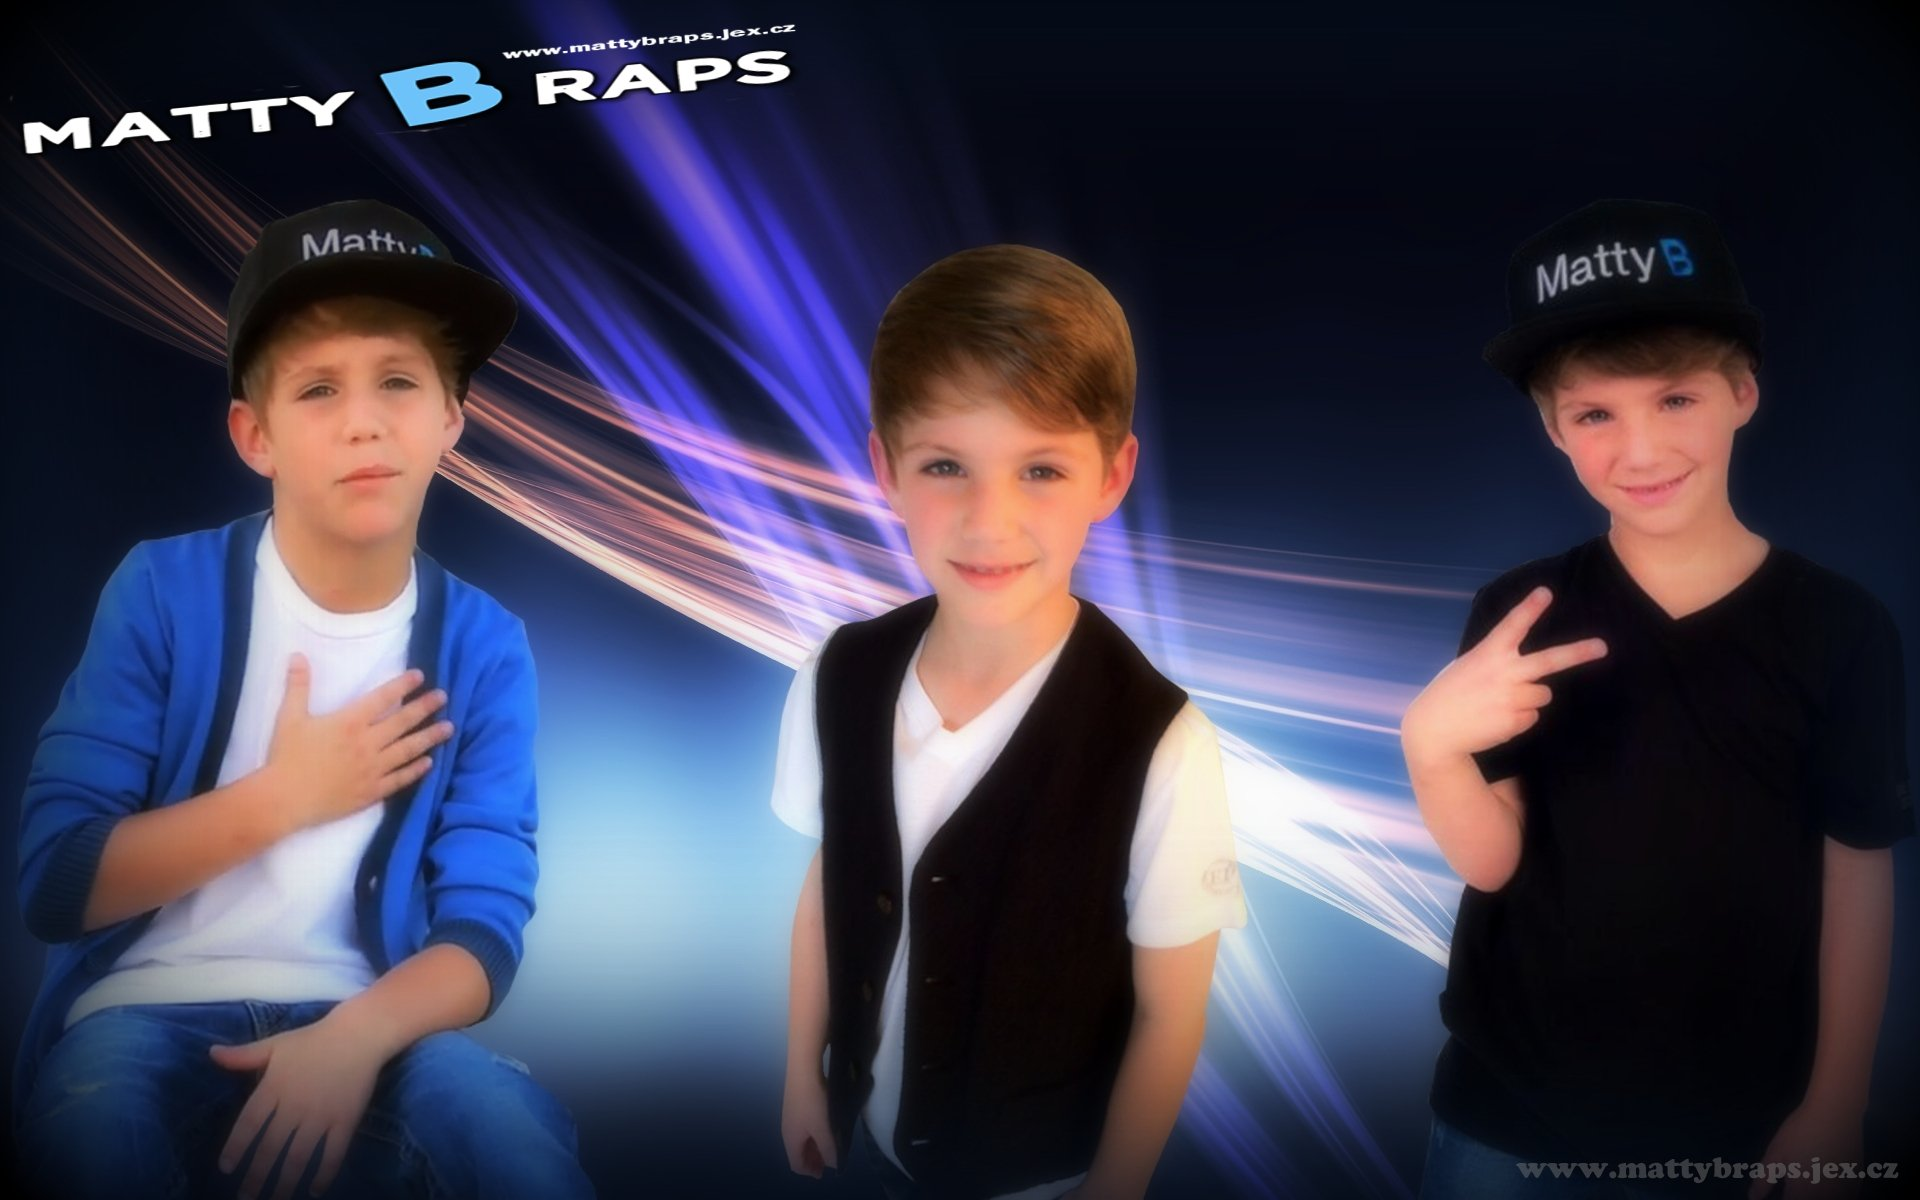 MattyB Wallpapers 27 Wallpapers – Adorable Wallpapers